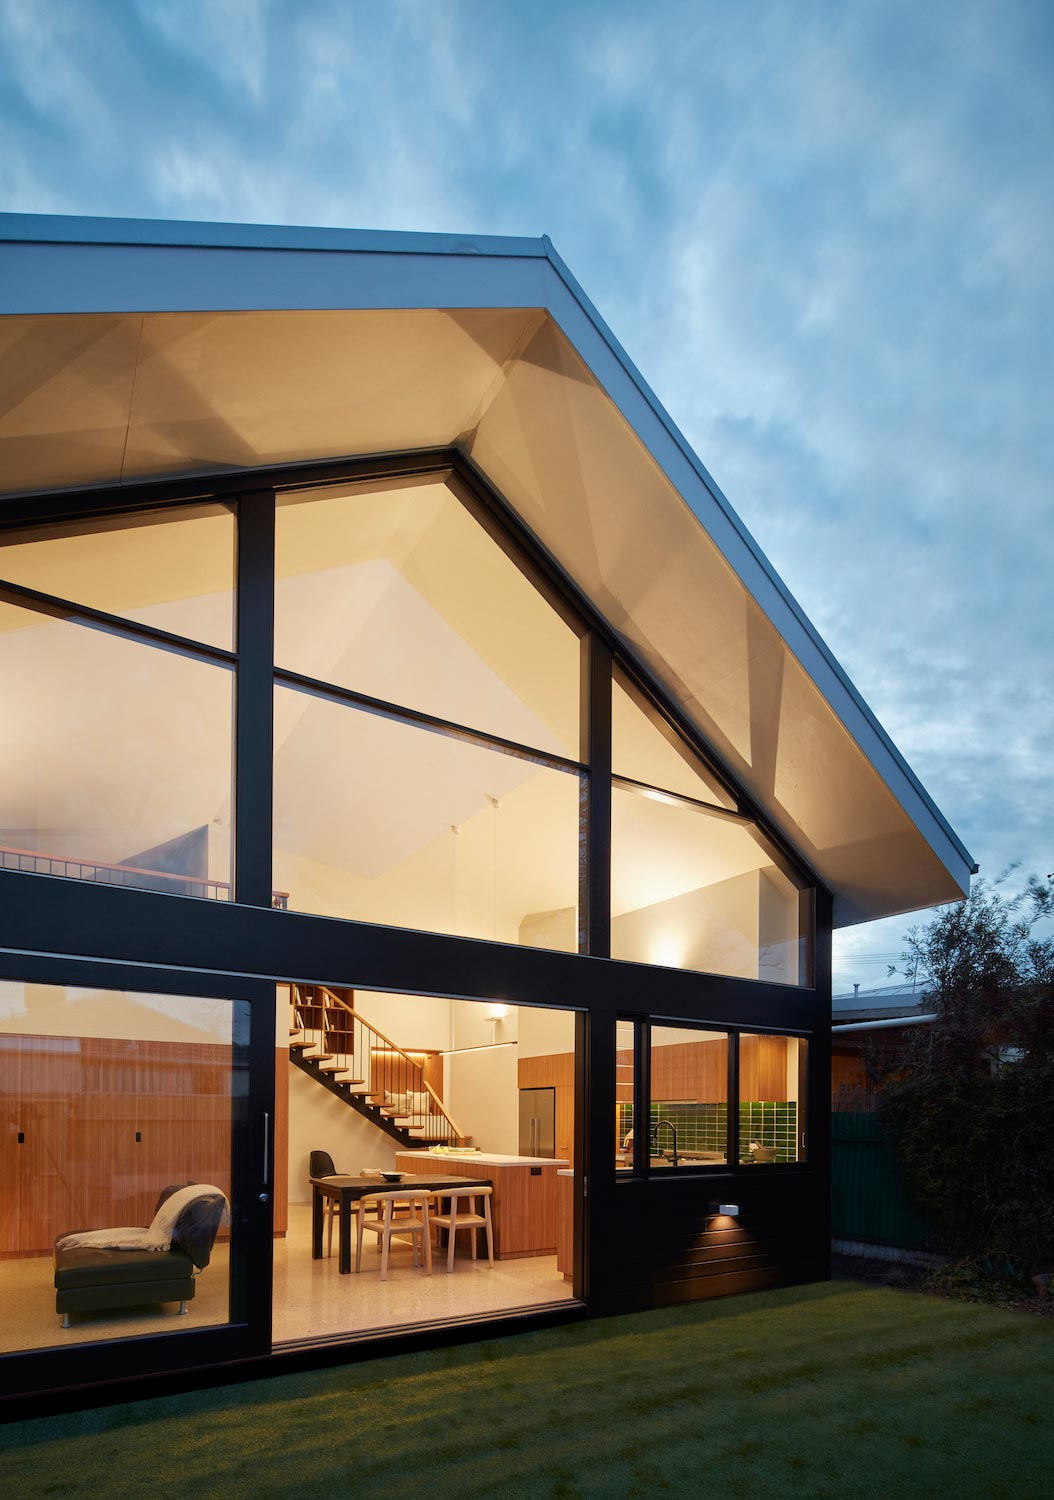 Extension Of A Building Into Two Level Contemporary House Which Has Mix